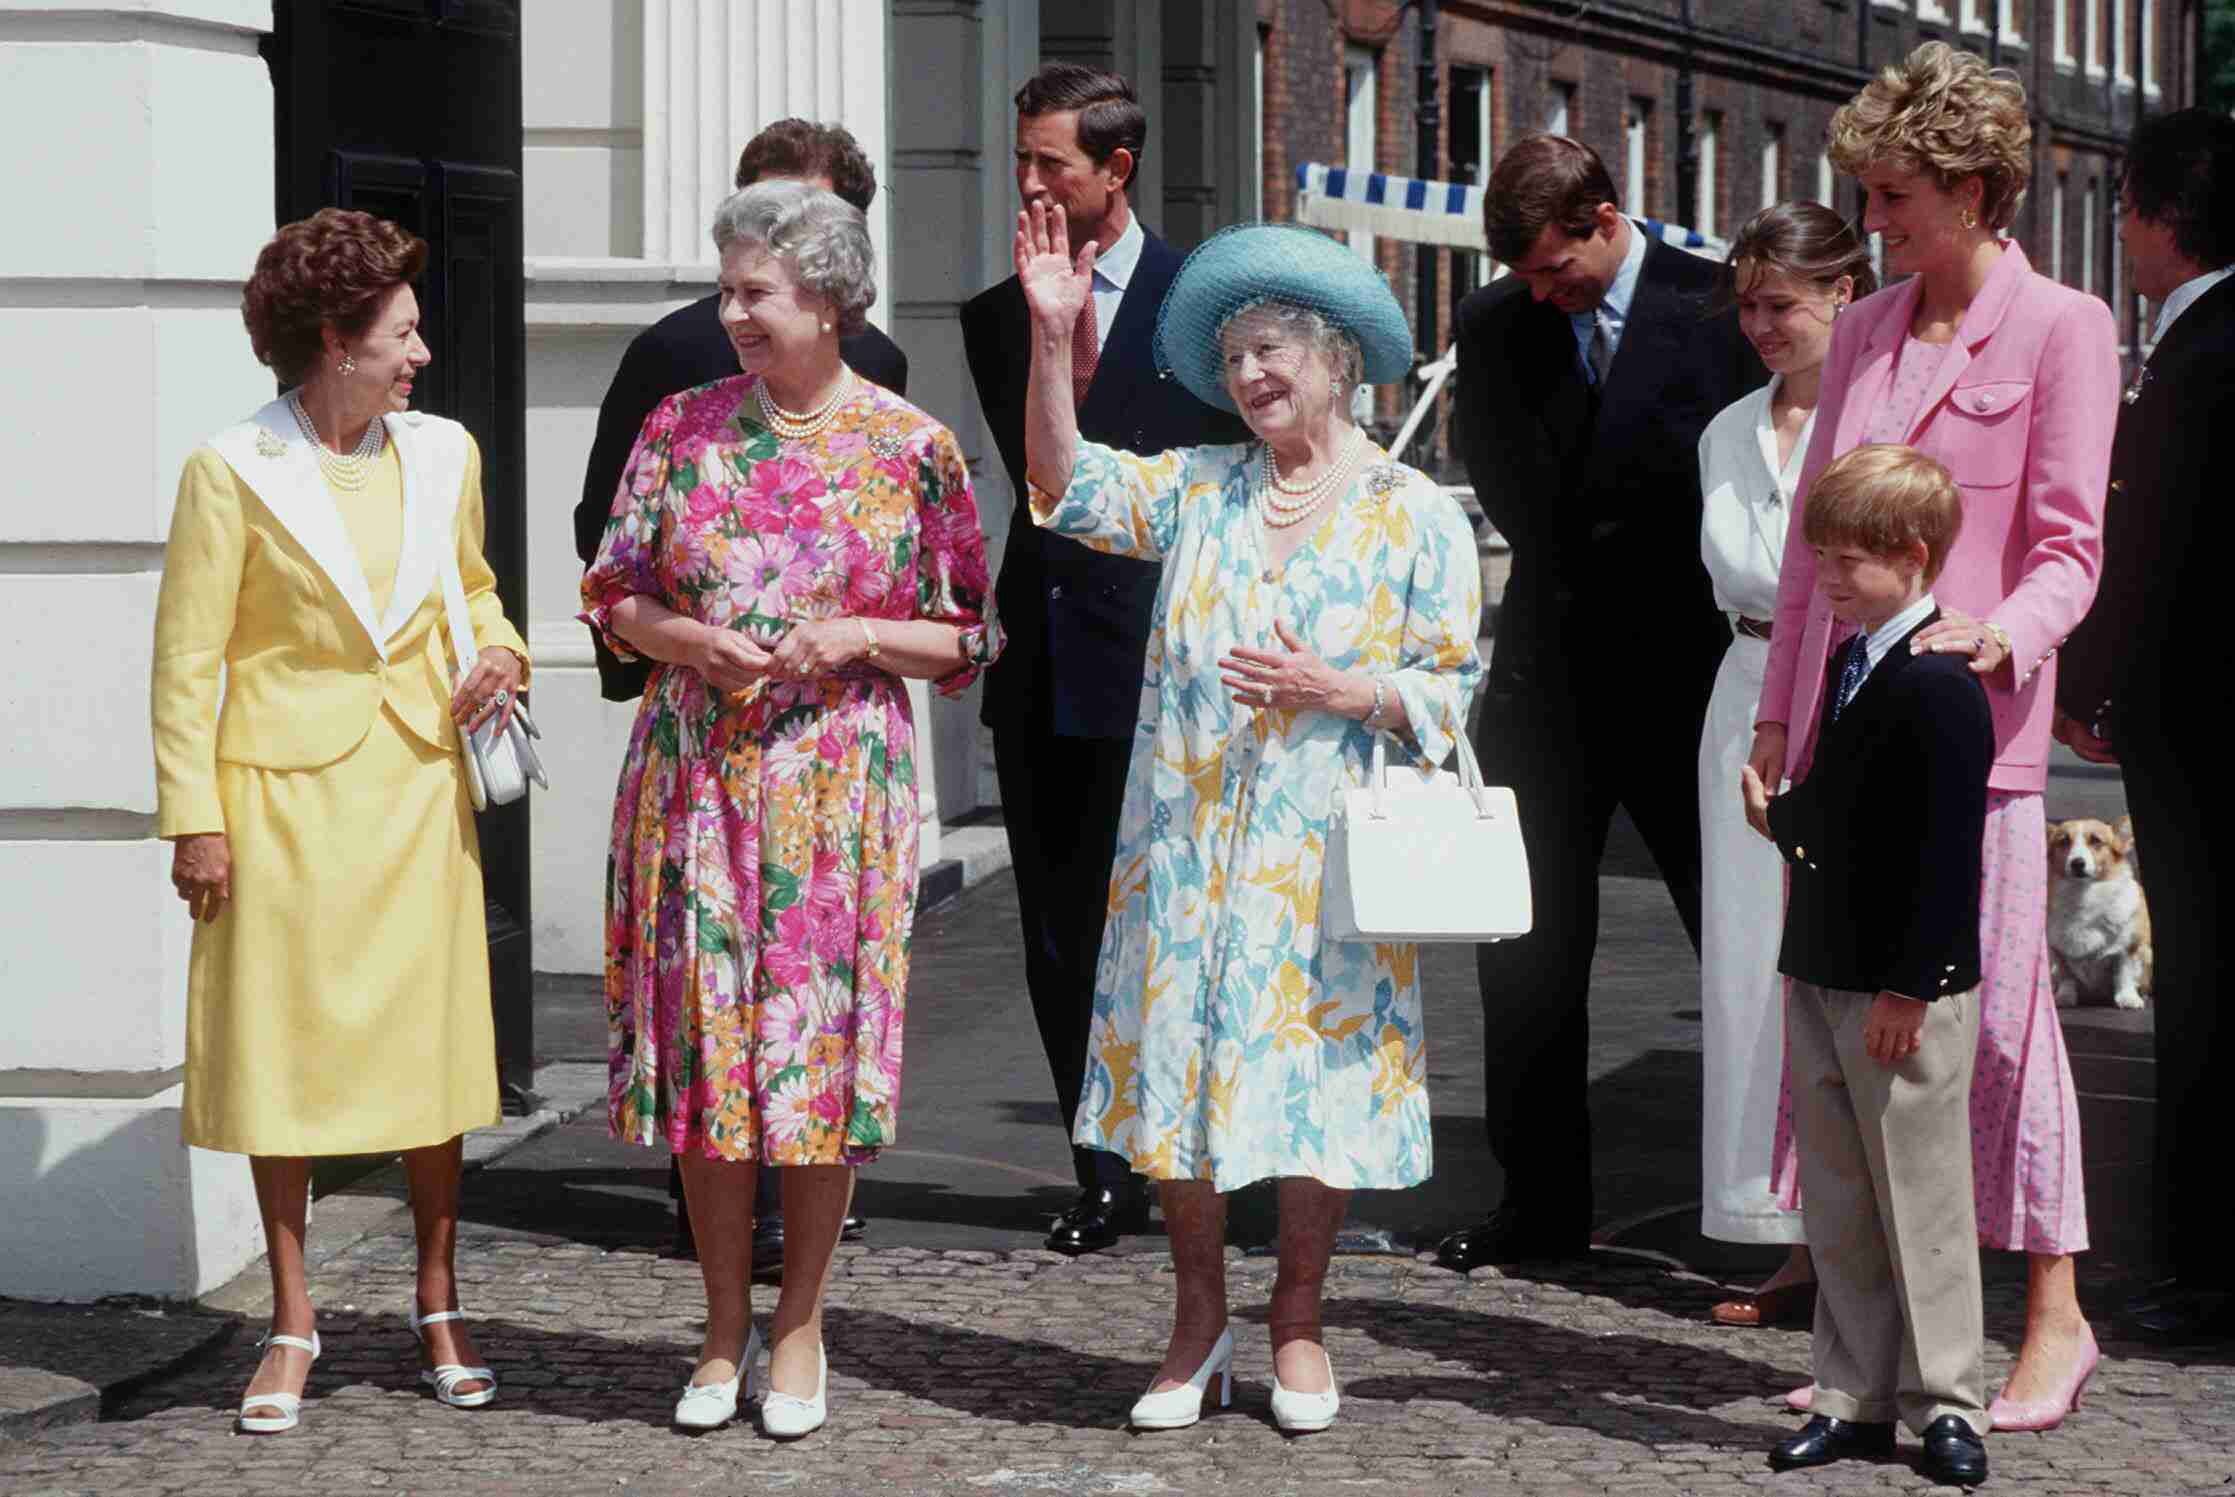 Queen Elizabeth the Queen Mother in 1992, accompanied by Princess Margaret, Queen Elizabeth ll, Diana, Princess of Wales and Prince Harry